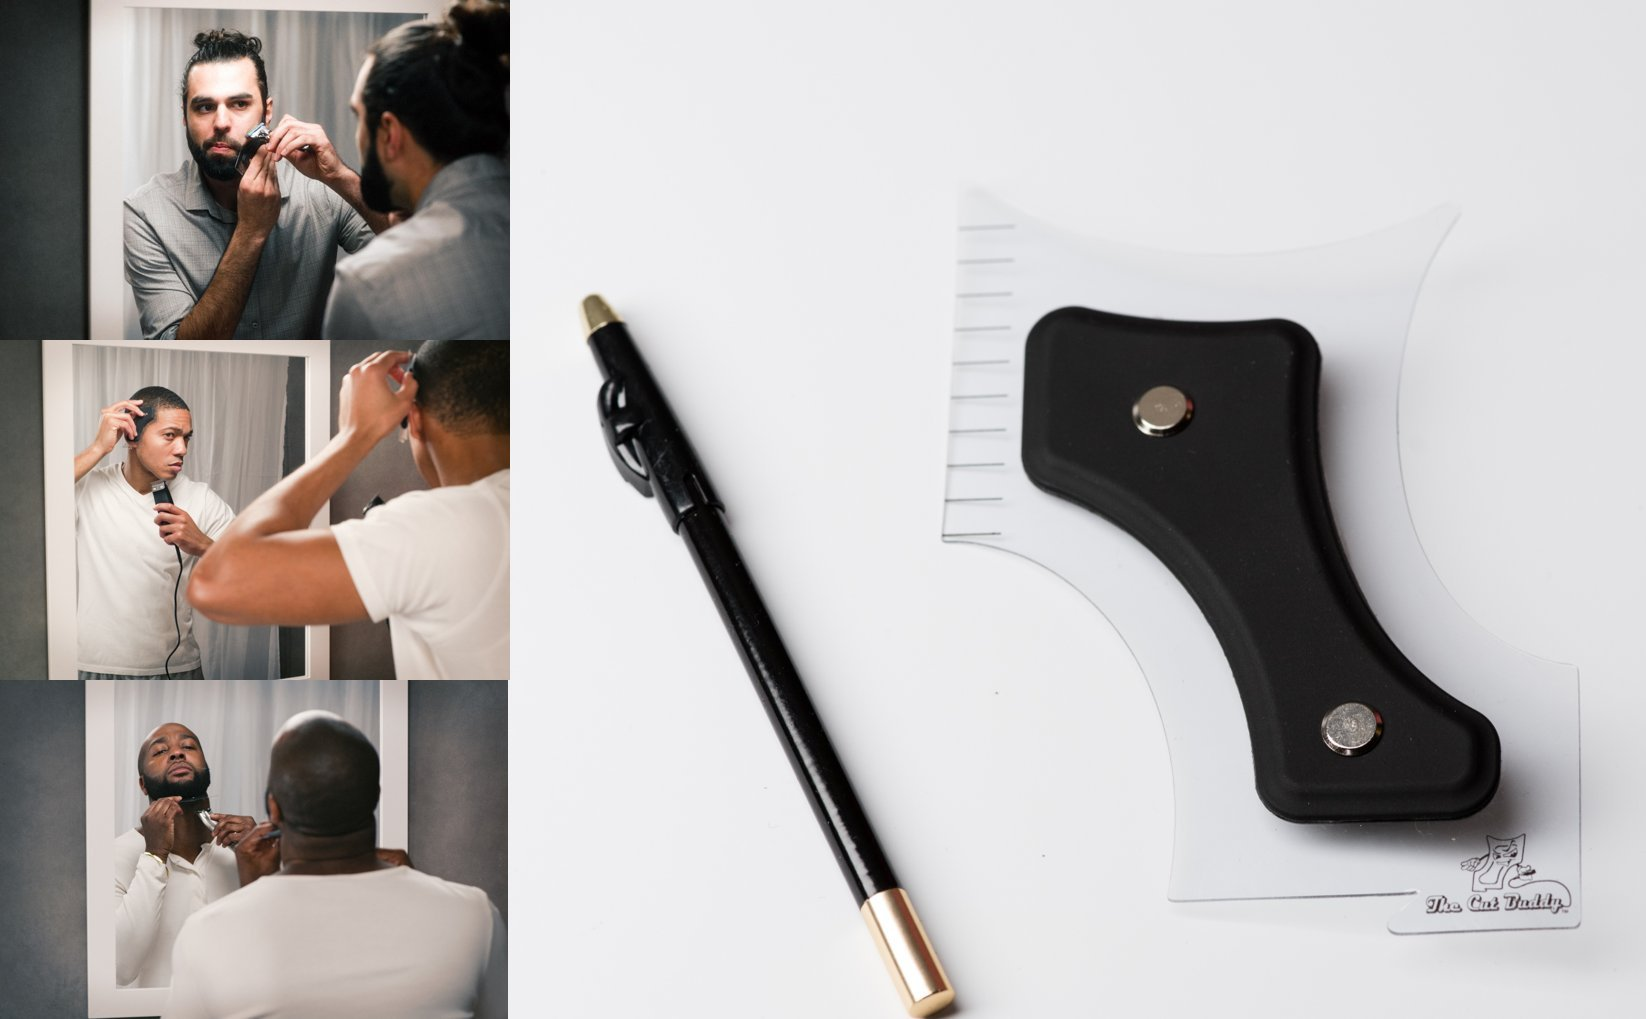 The Cut Buddy - Shark Tank Winner - Hair Beard Shaping Tool Shaping Tool - Hairline Outliner, Beard Detailer, Sideburns, Mustache, Neckline, Goatee with Bonus Barber Pencil